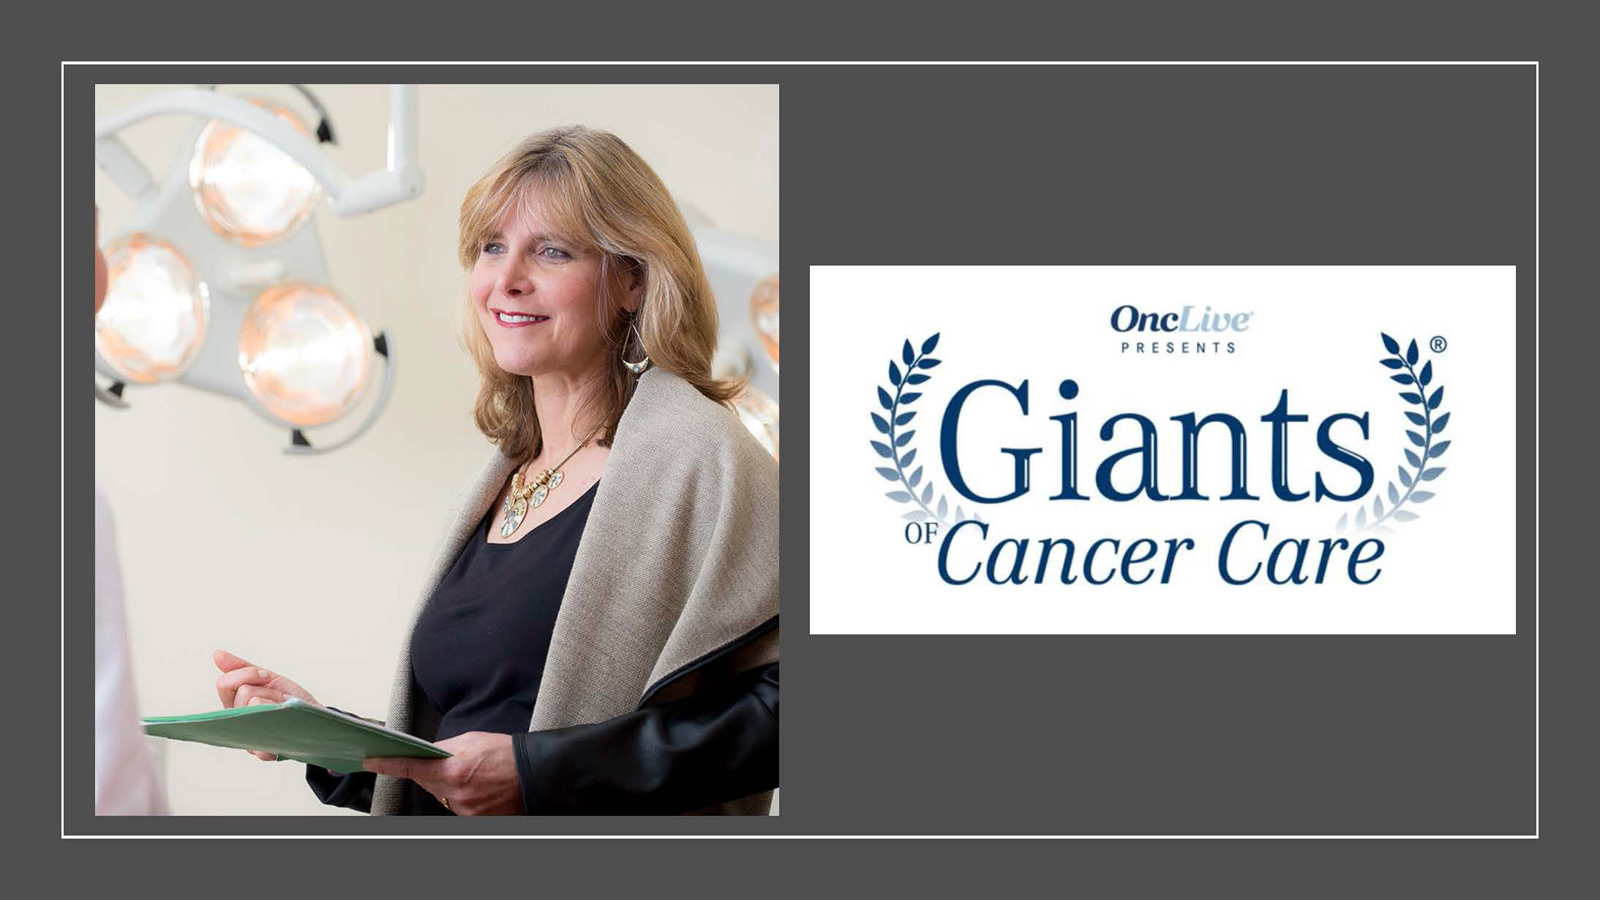 Laura J Esserman MD MBA Is The Onclive 2018 Giant Of Cancer Care In Cancer Diagnostics